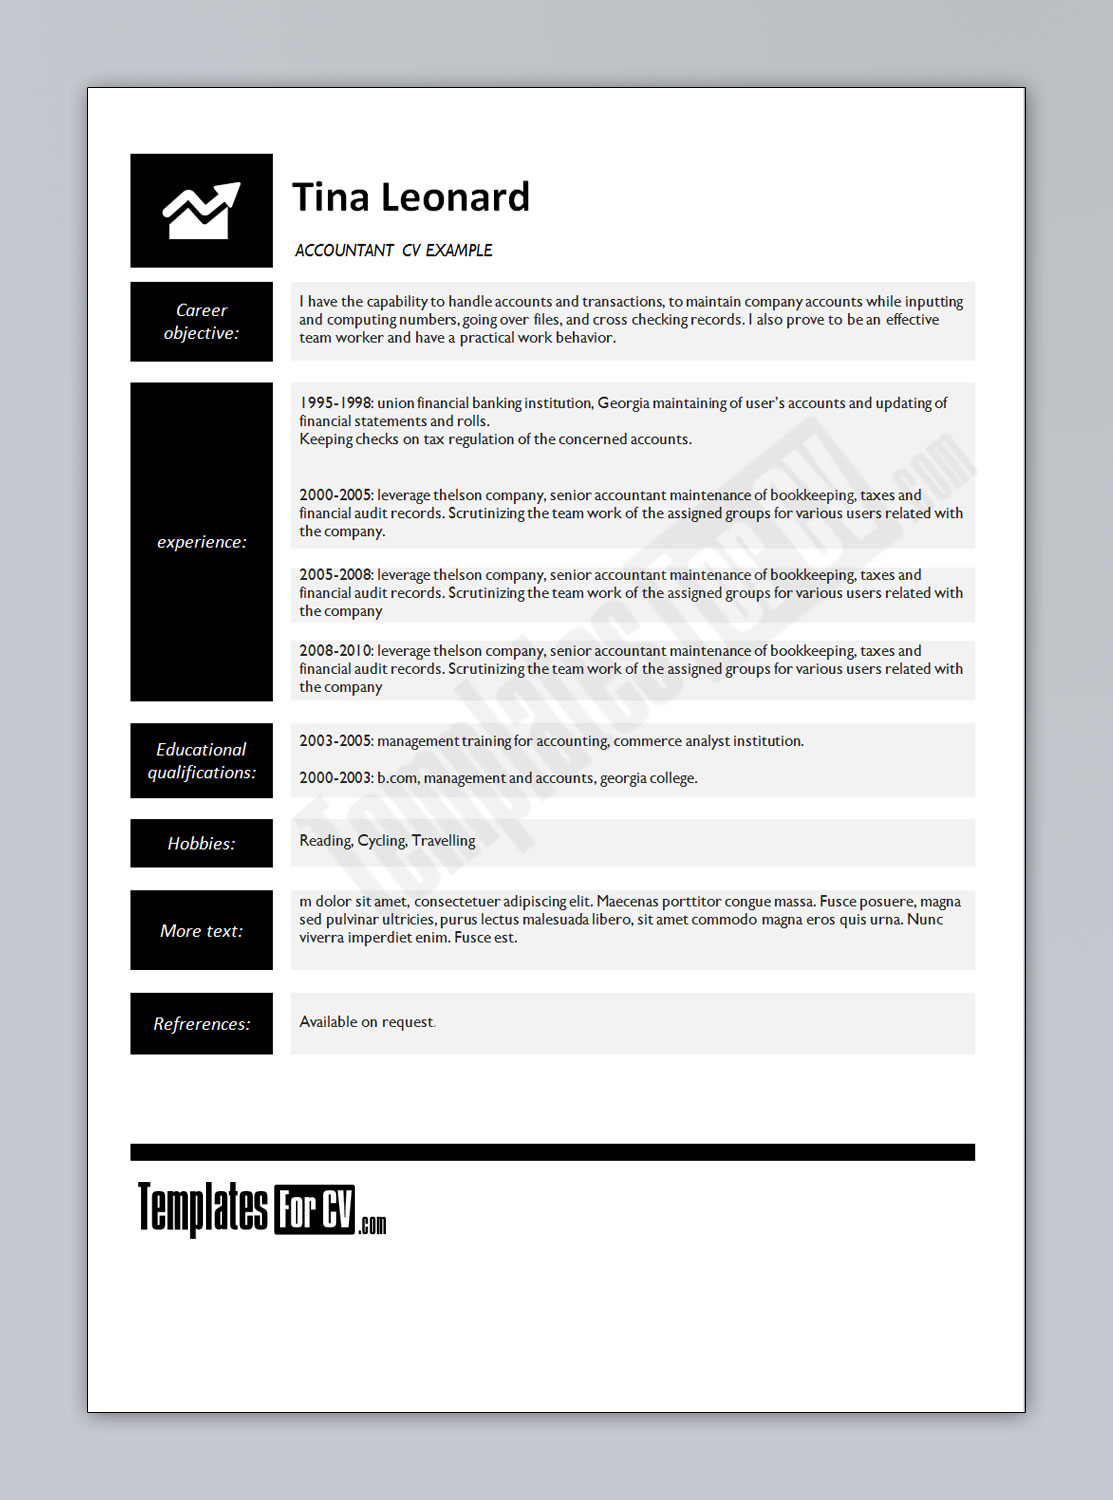 Accountant CV Template U2013 Tina Leonard  Accountant Resume Template